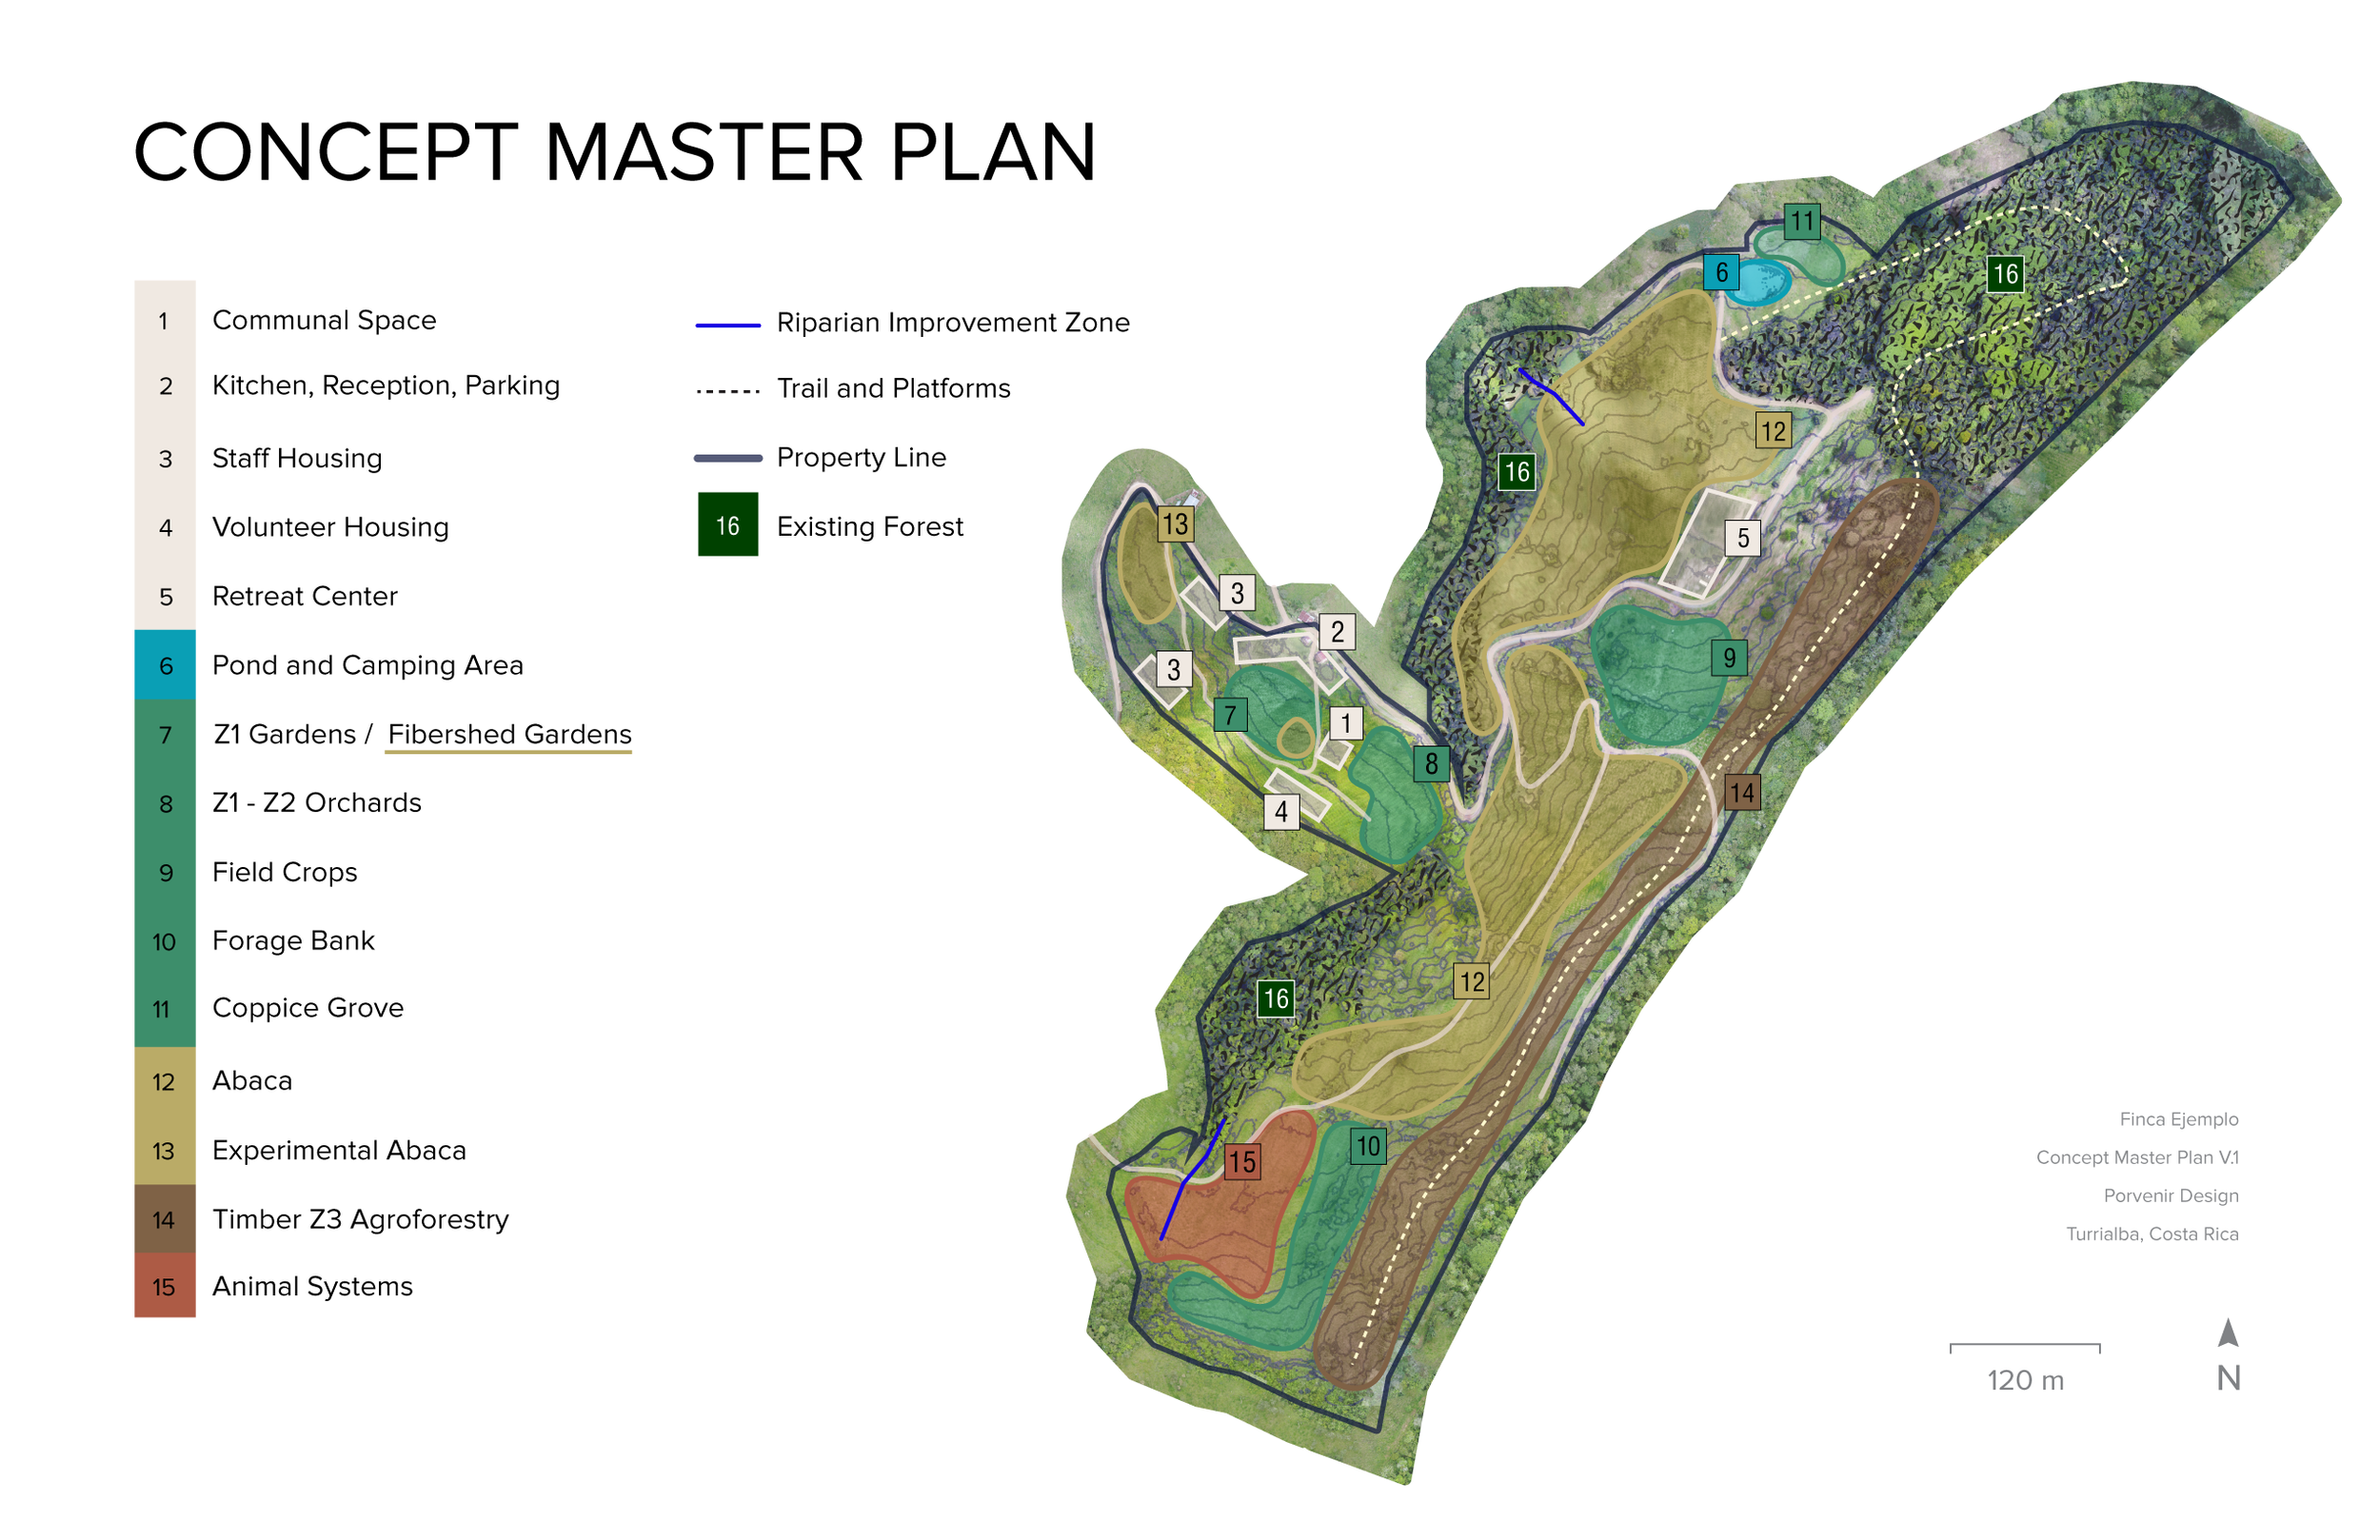 The concept master plan of Finca Ejemplo guiding the larger planting patterns. Map by  Alejandro Arturo .